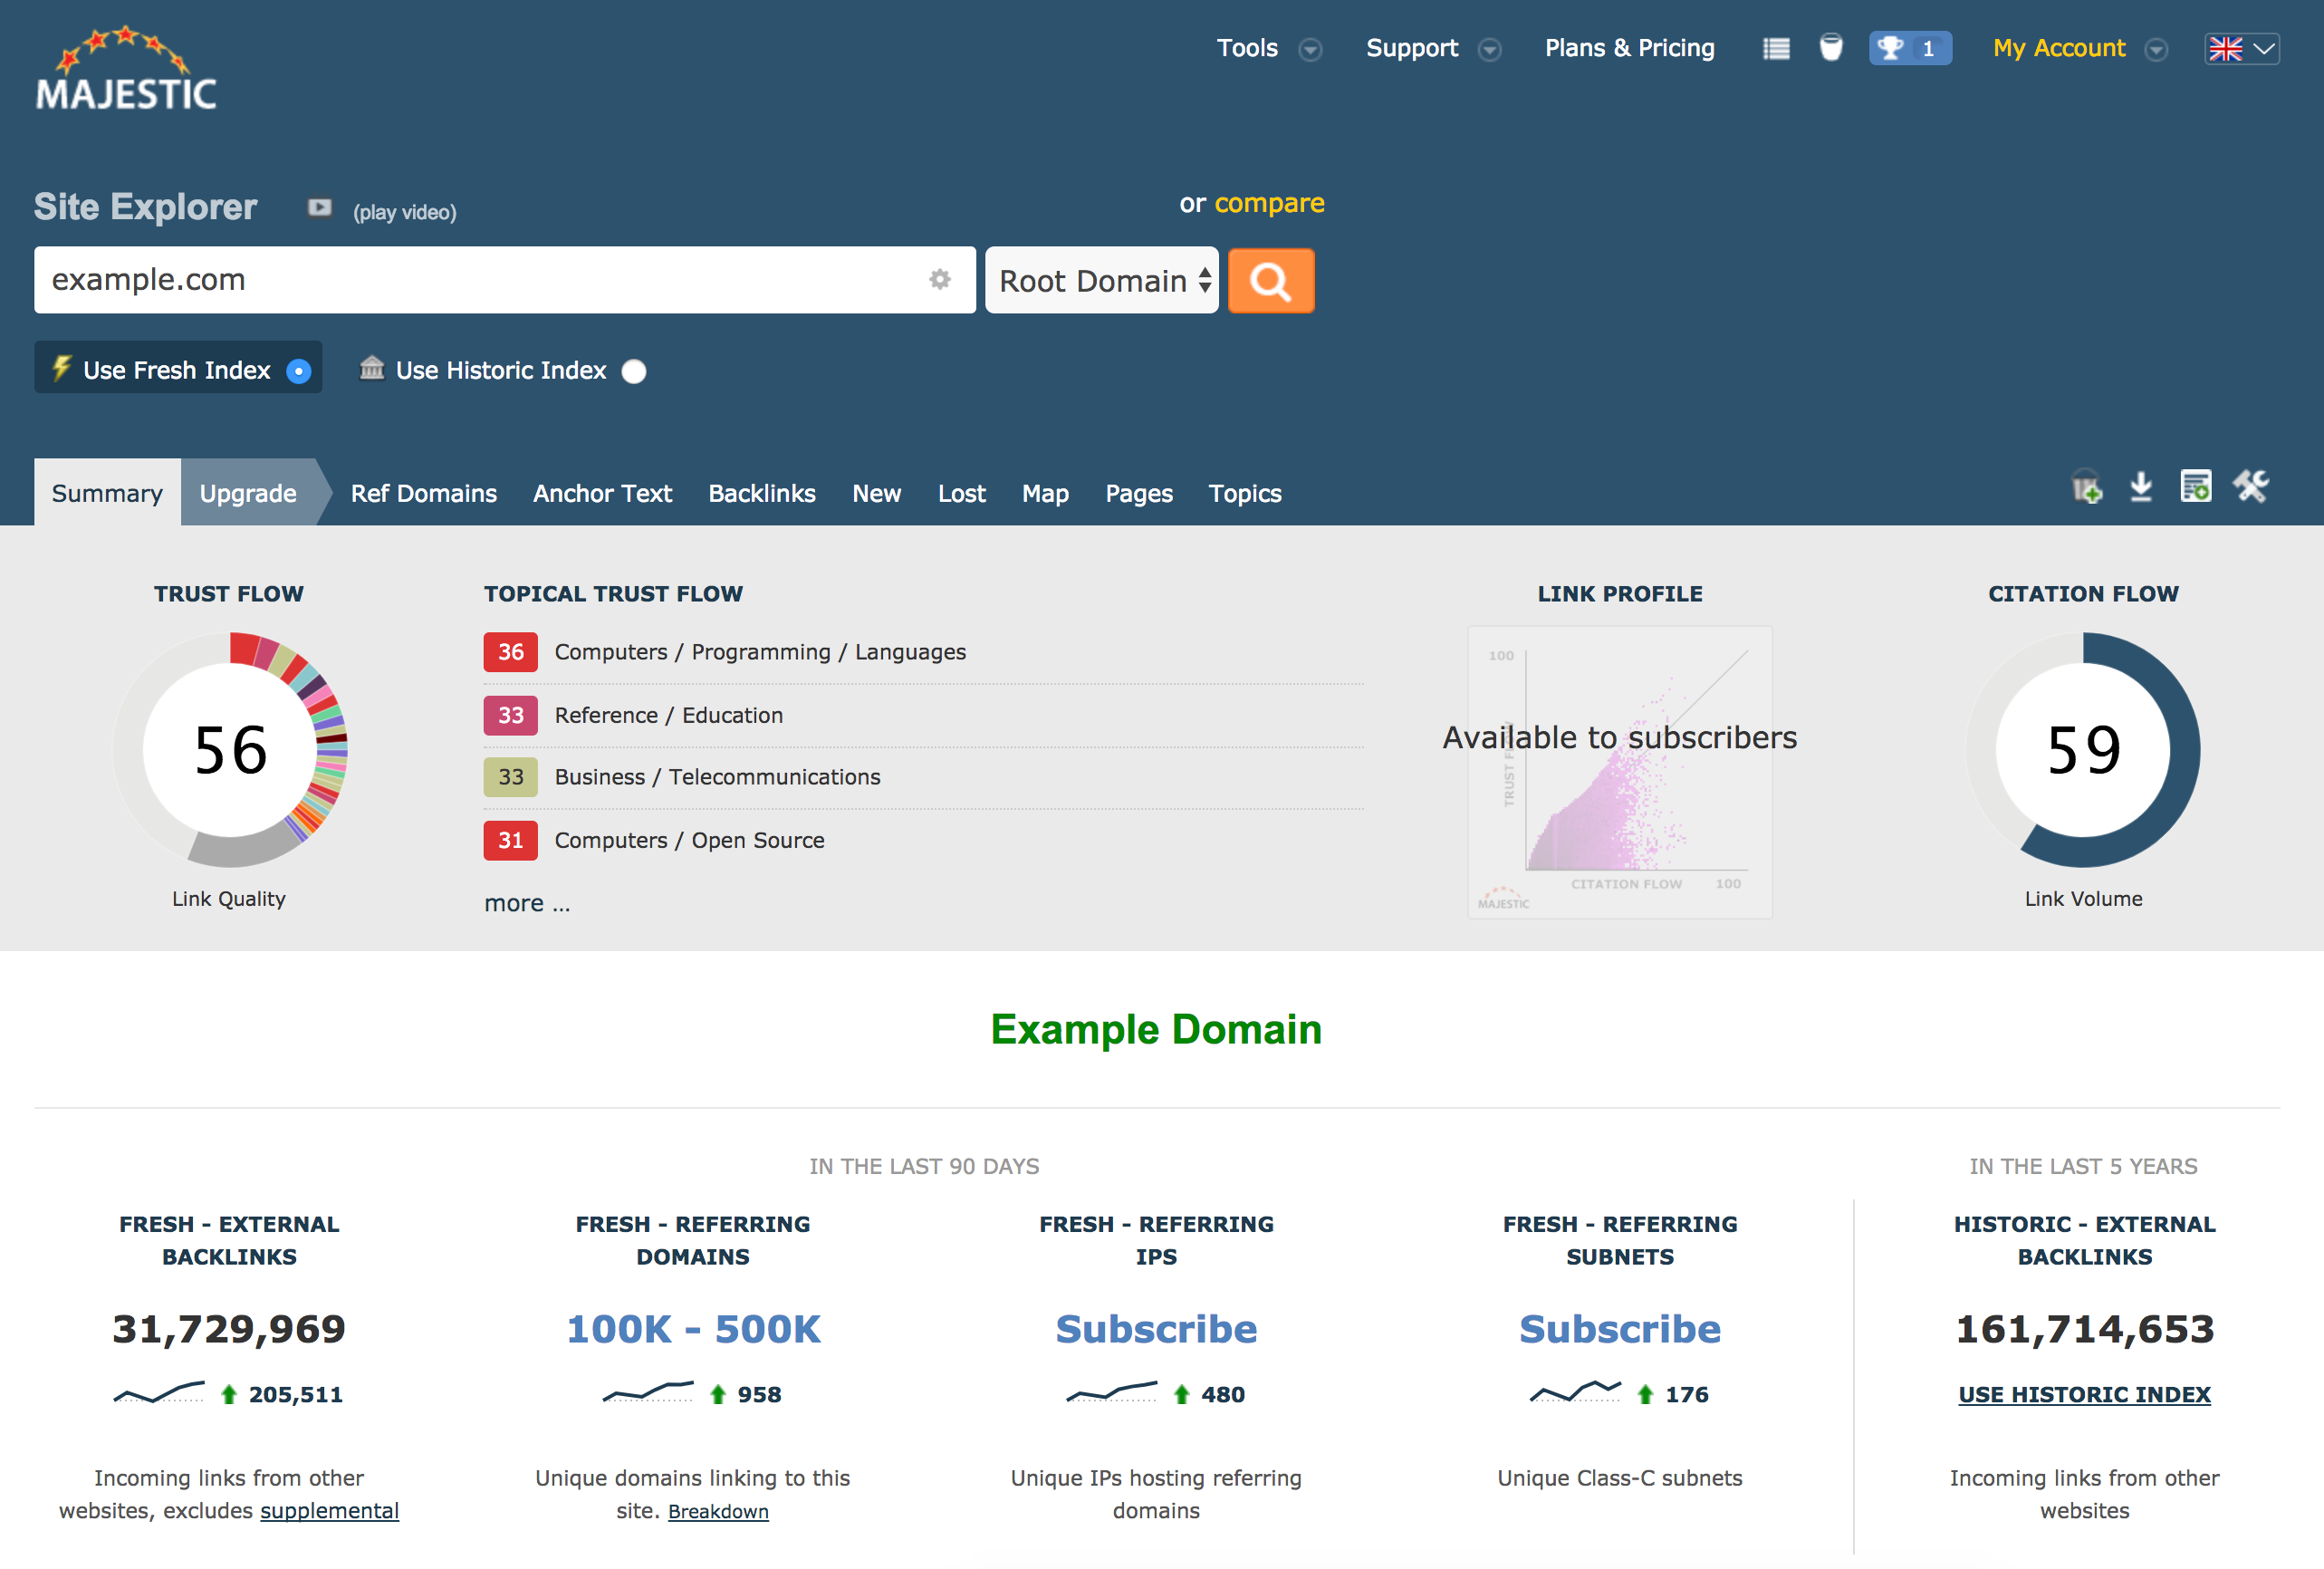 20 Best SEO Software & Tools - Search Engine Optimization Software